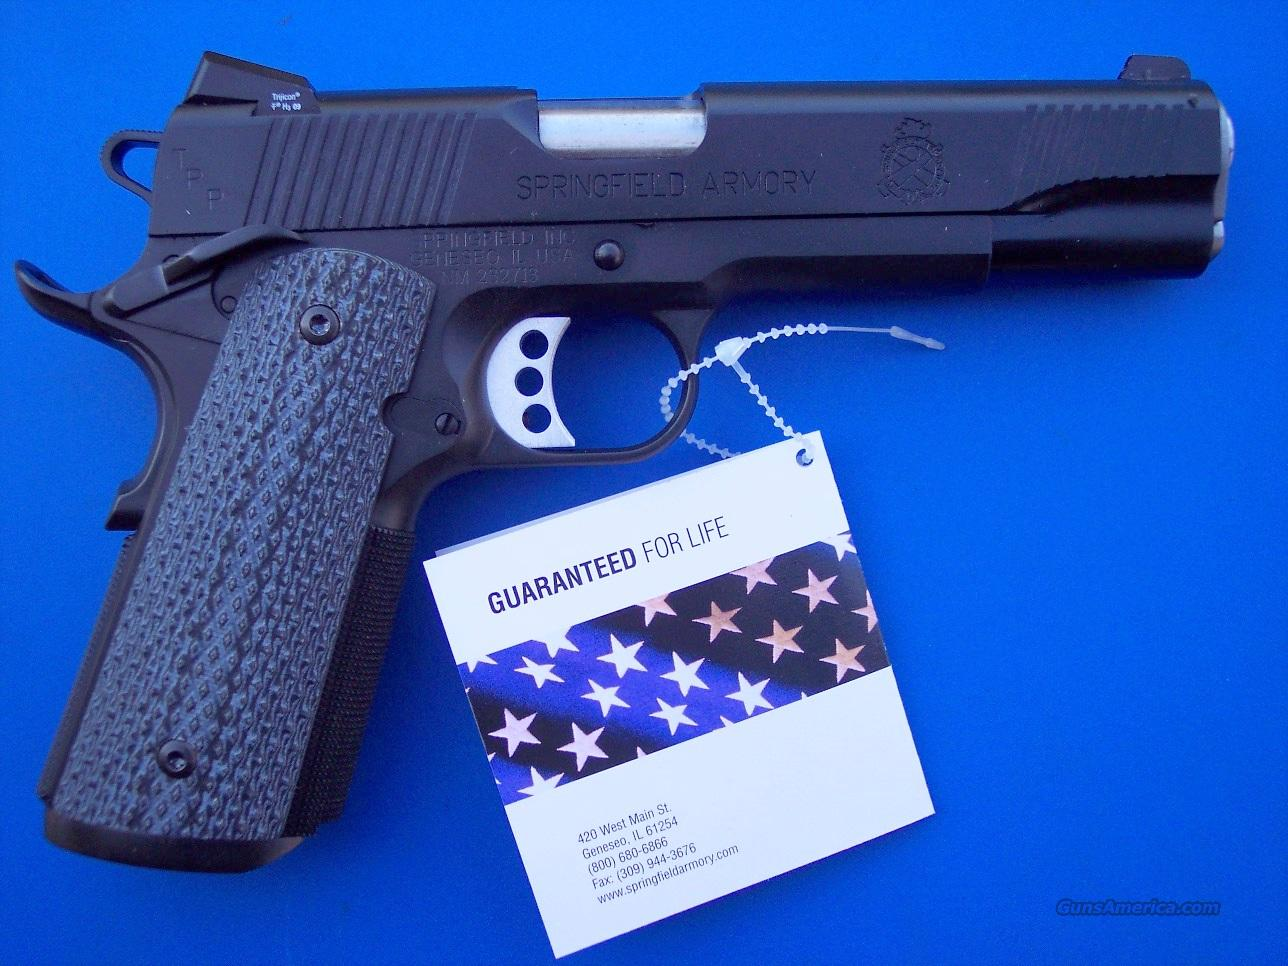 Springfield TRP Tactical 1911 .45 acp Armory Kote Tactical Response Pistol PC9108LP *NEW*  Guns > Pistols > Springfield Armory Pistols > 1911 Type